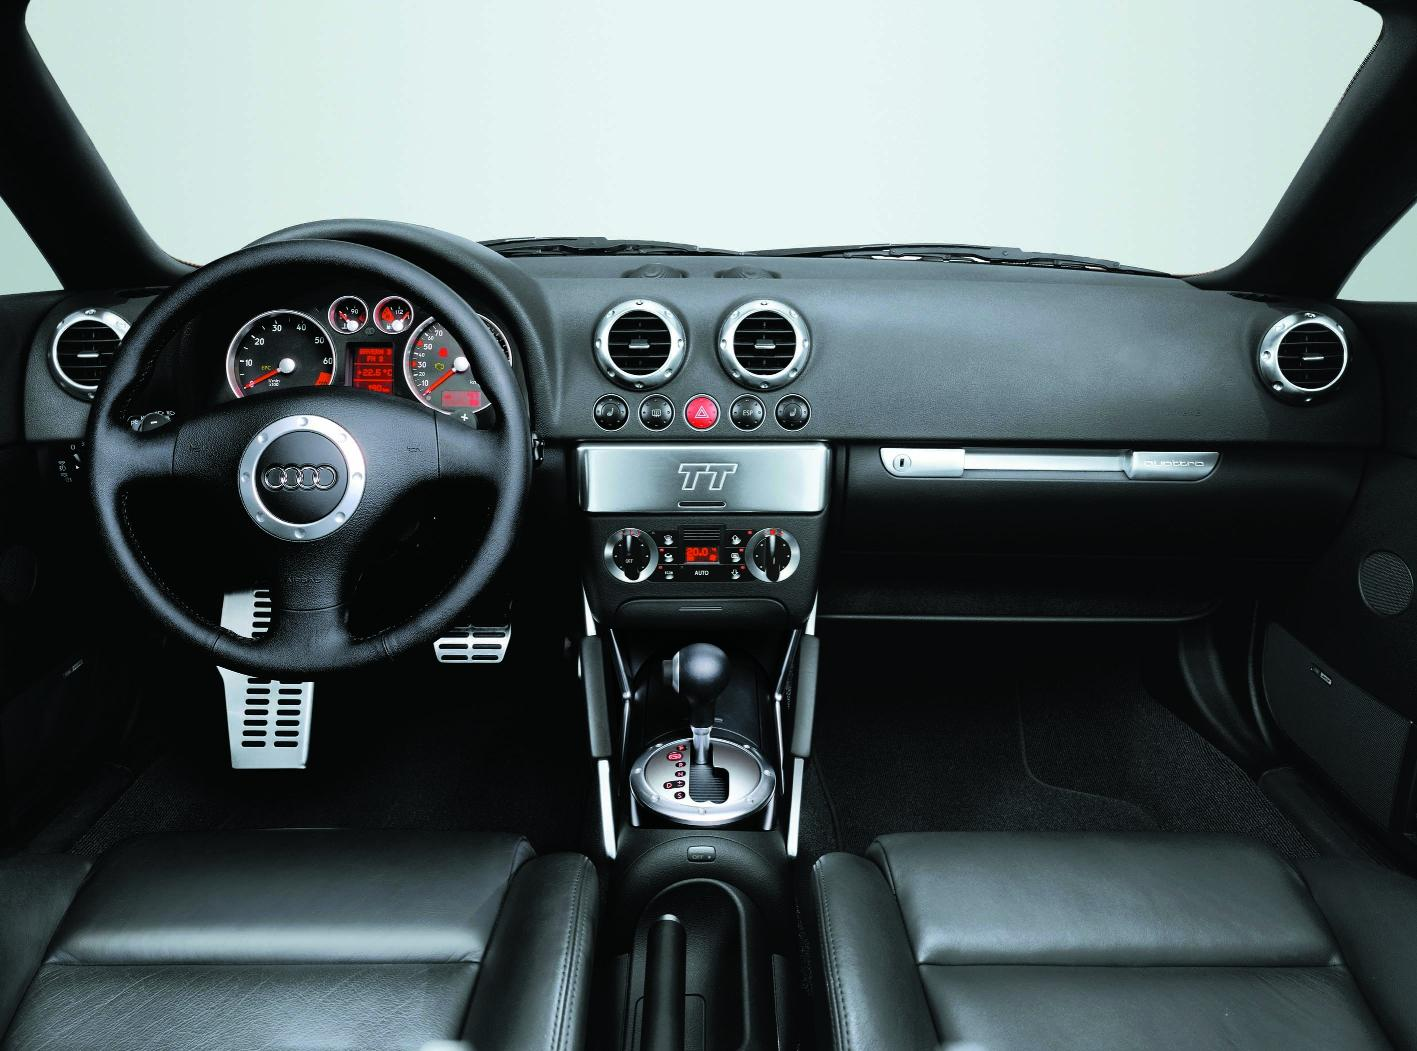 This jaguar is in a very neat and original condition (the interior,. Audi TT MK1 1999-2006